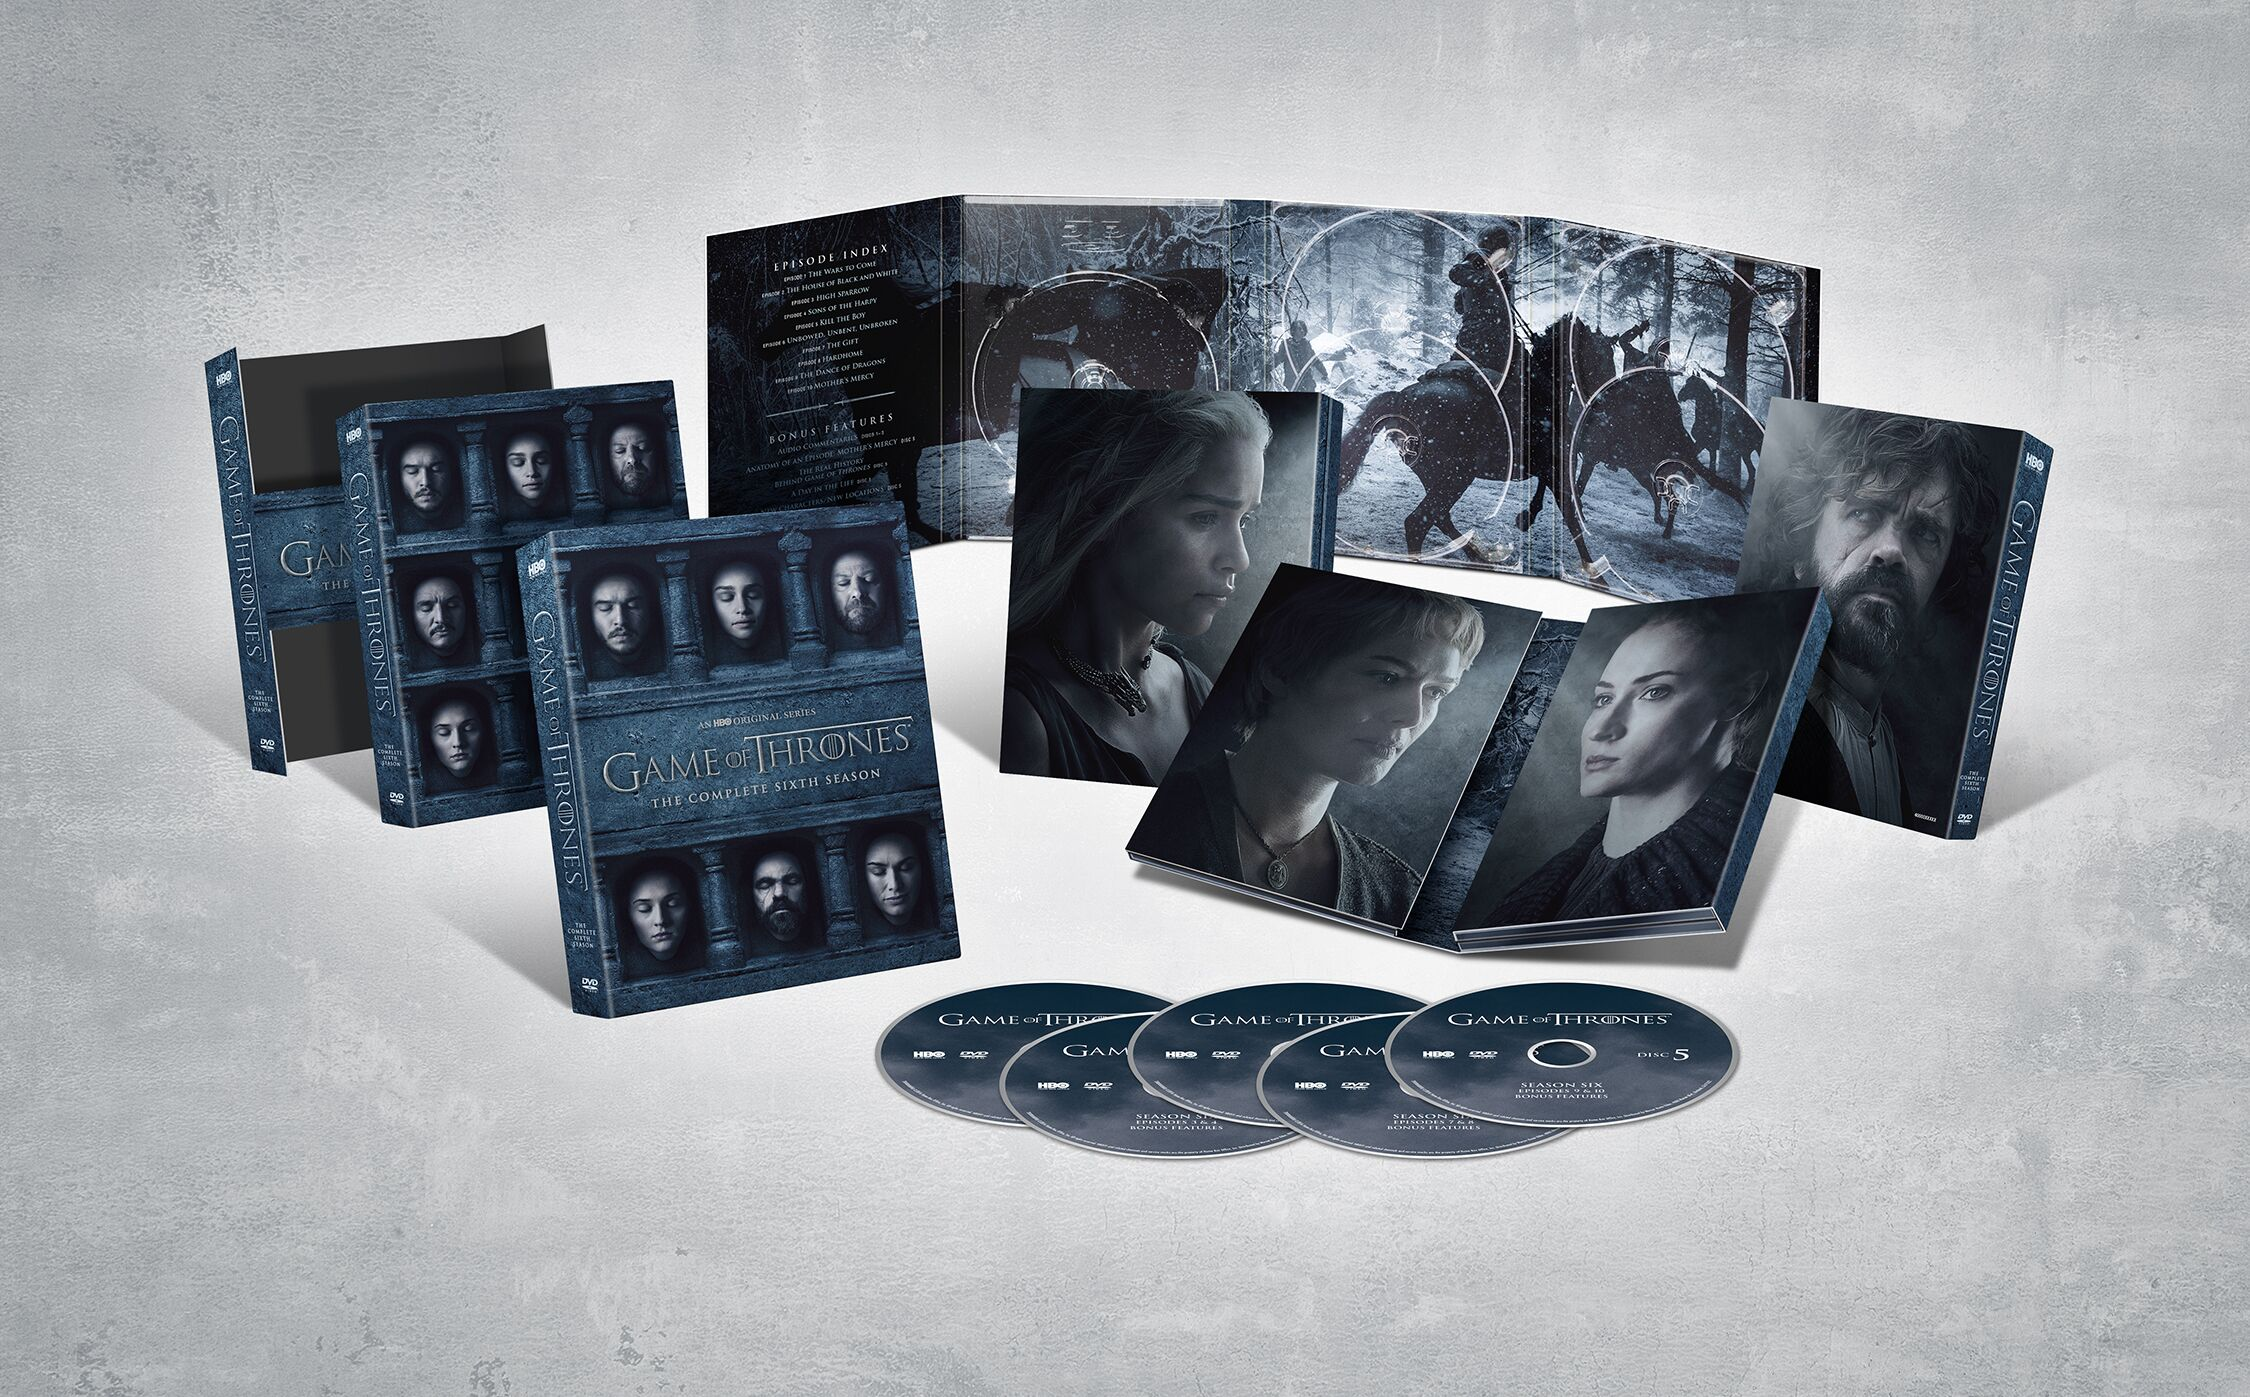 A look at the extras on the Game of Thrones Season 6 boxset, dropping November 15